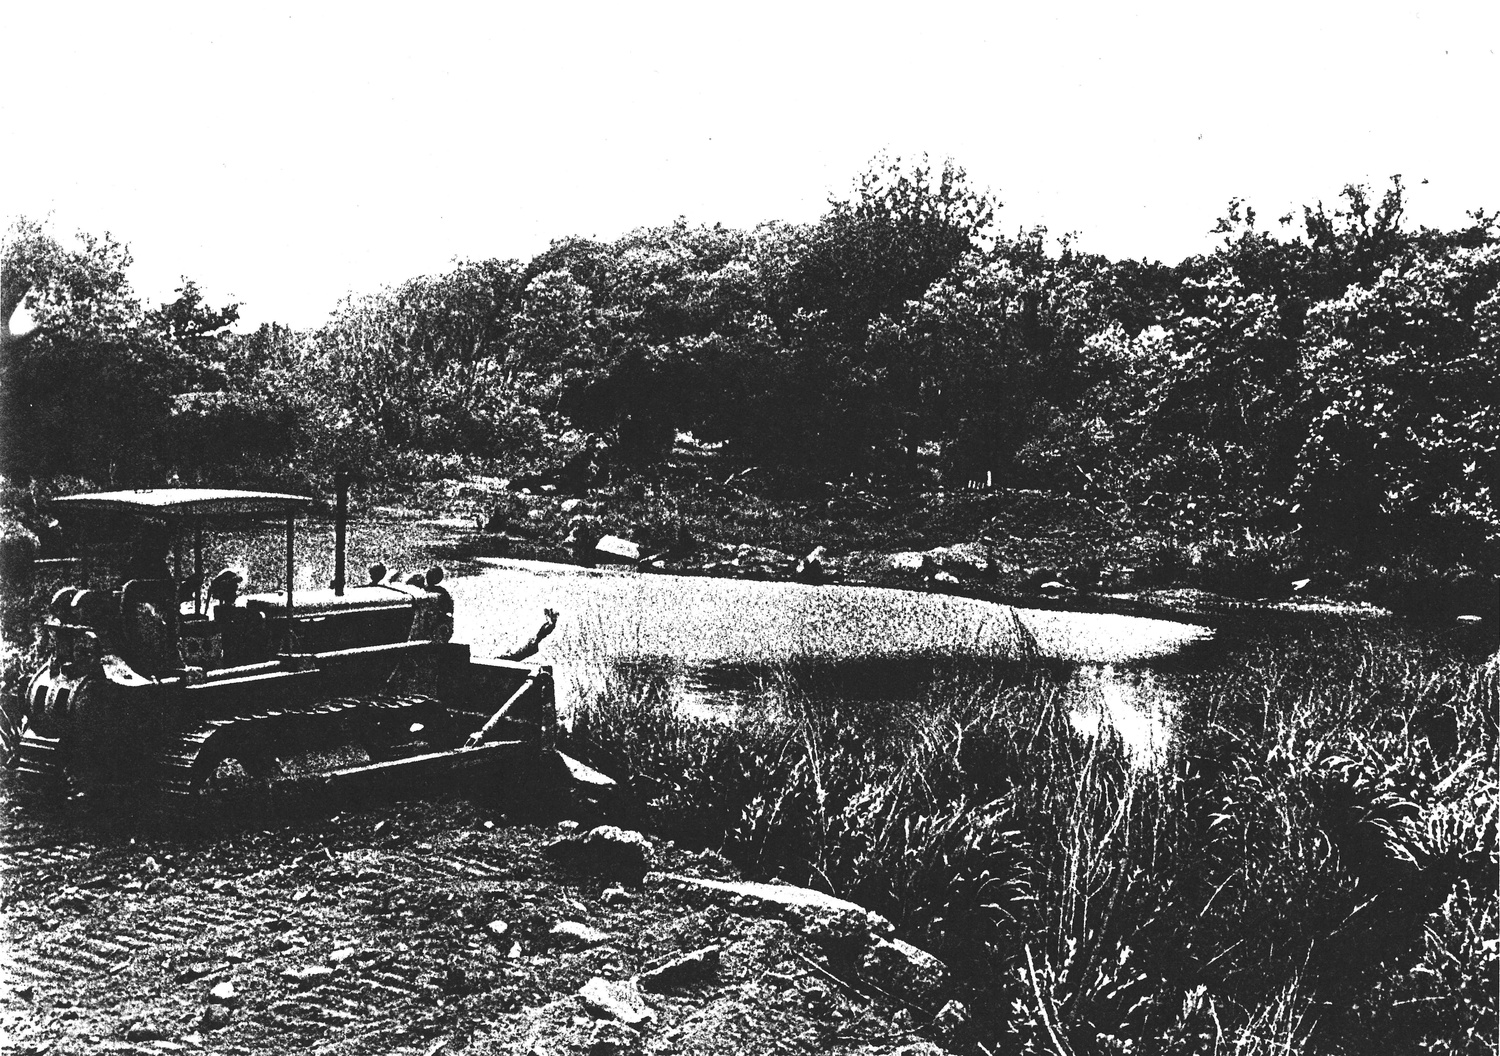 Following campus demonstrations, workers under the direction of Harvard and the City move granite blocks to partially fill in Muddy Pond in June, 1971 in this archival newspaper clipping.